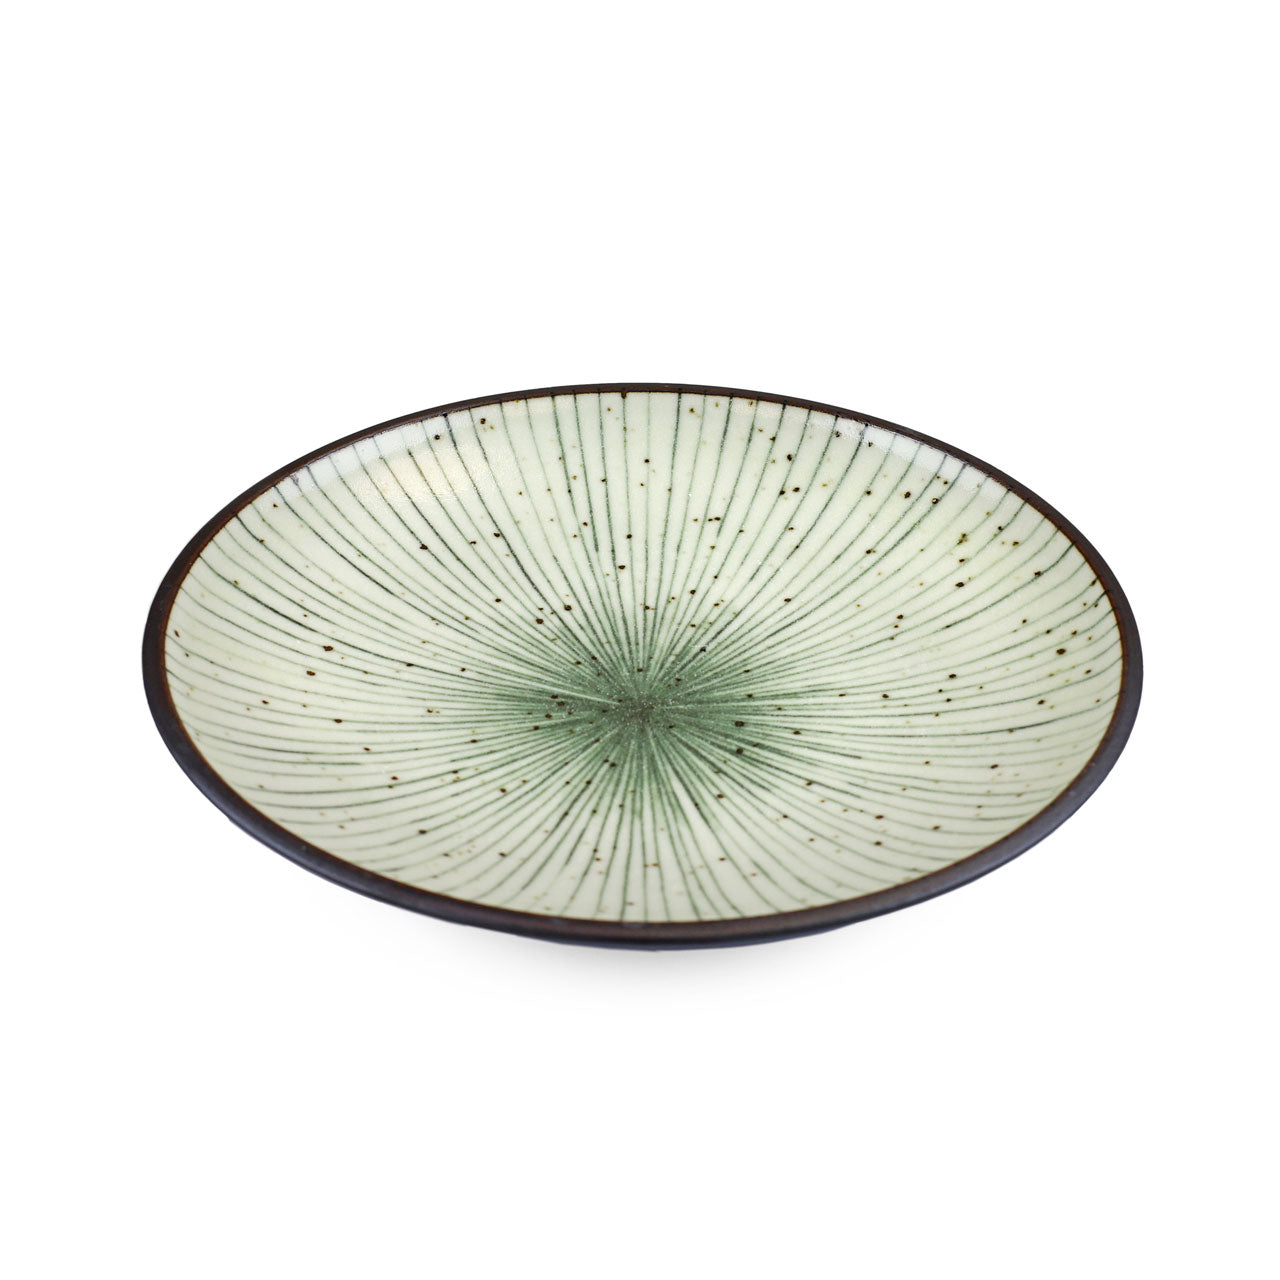 "Tokusa Blue Lined Interior Salad Plate 7.75"" dia"